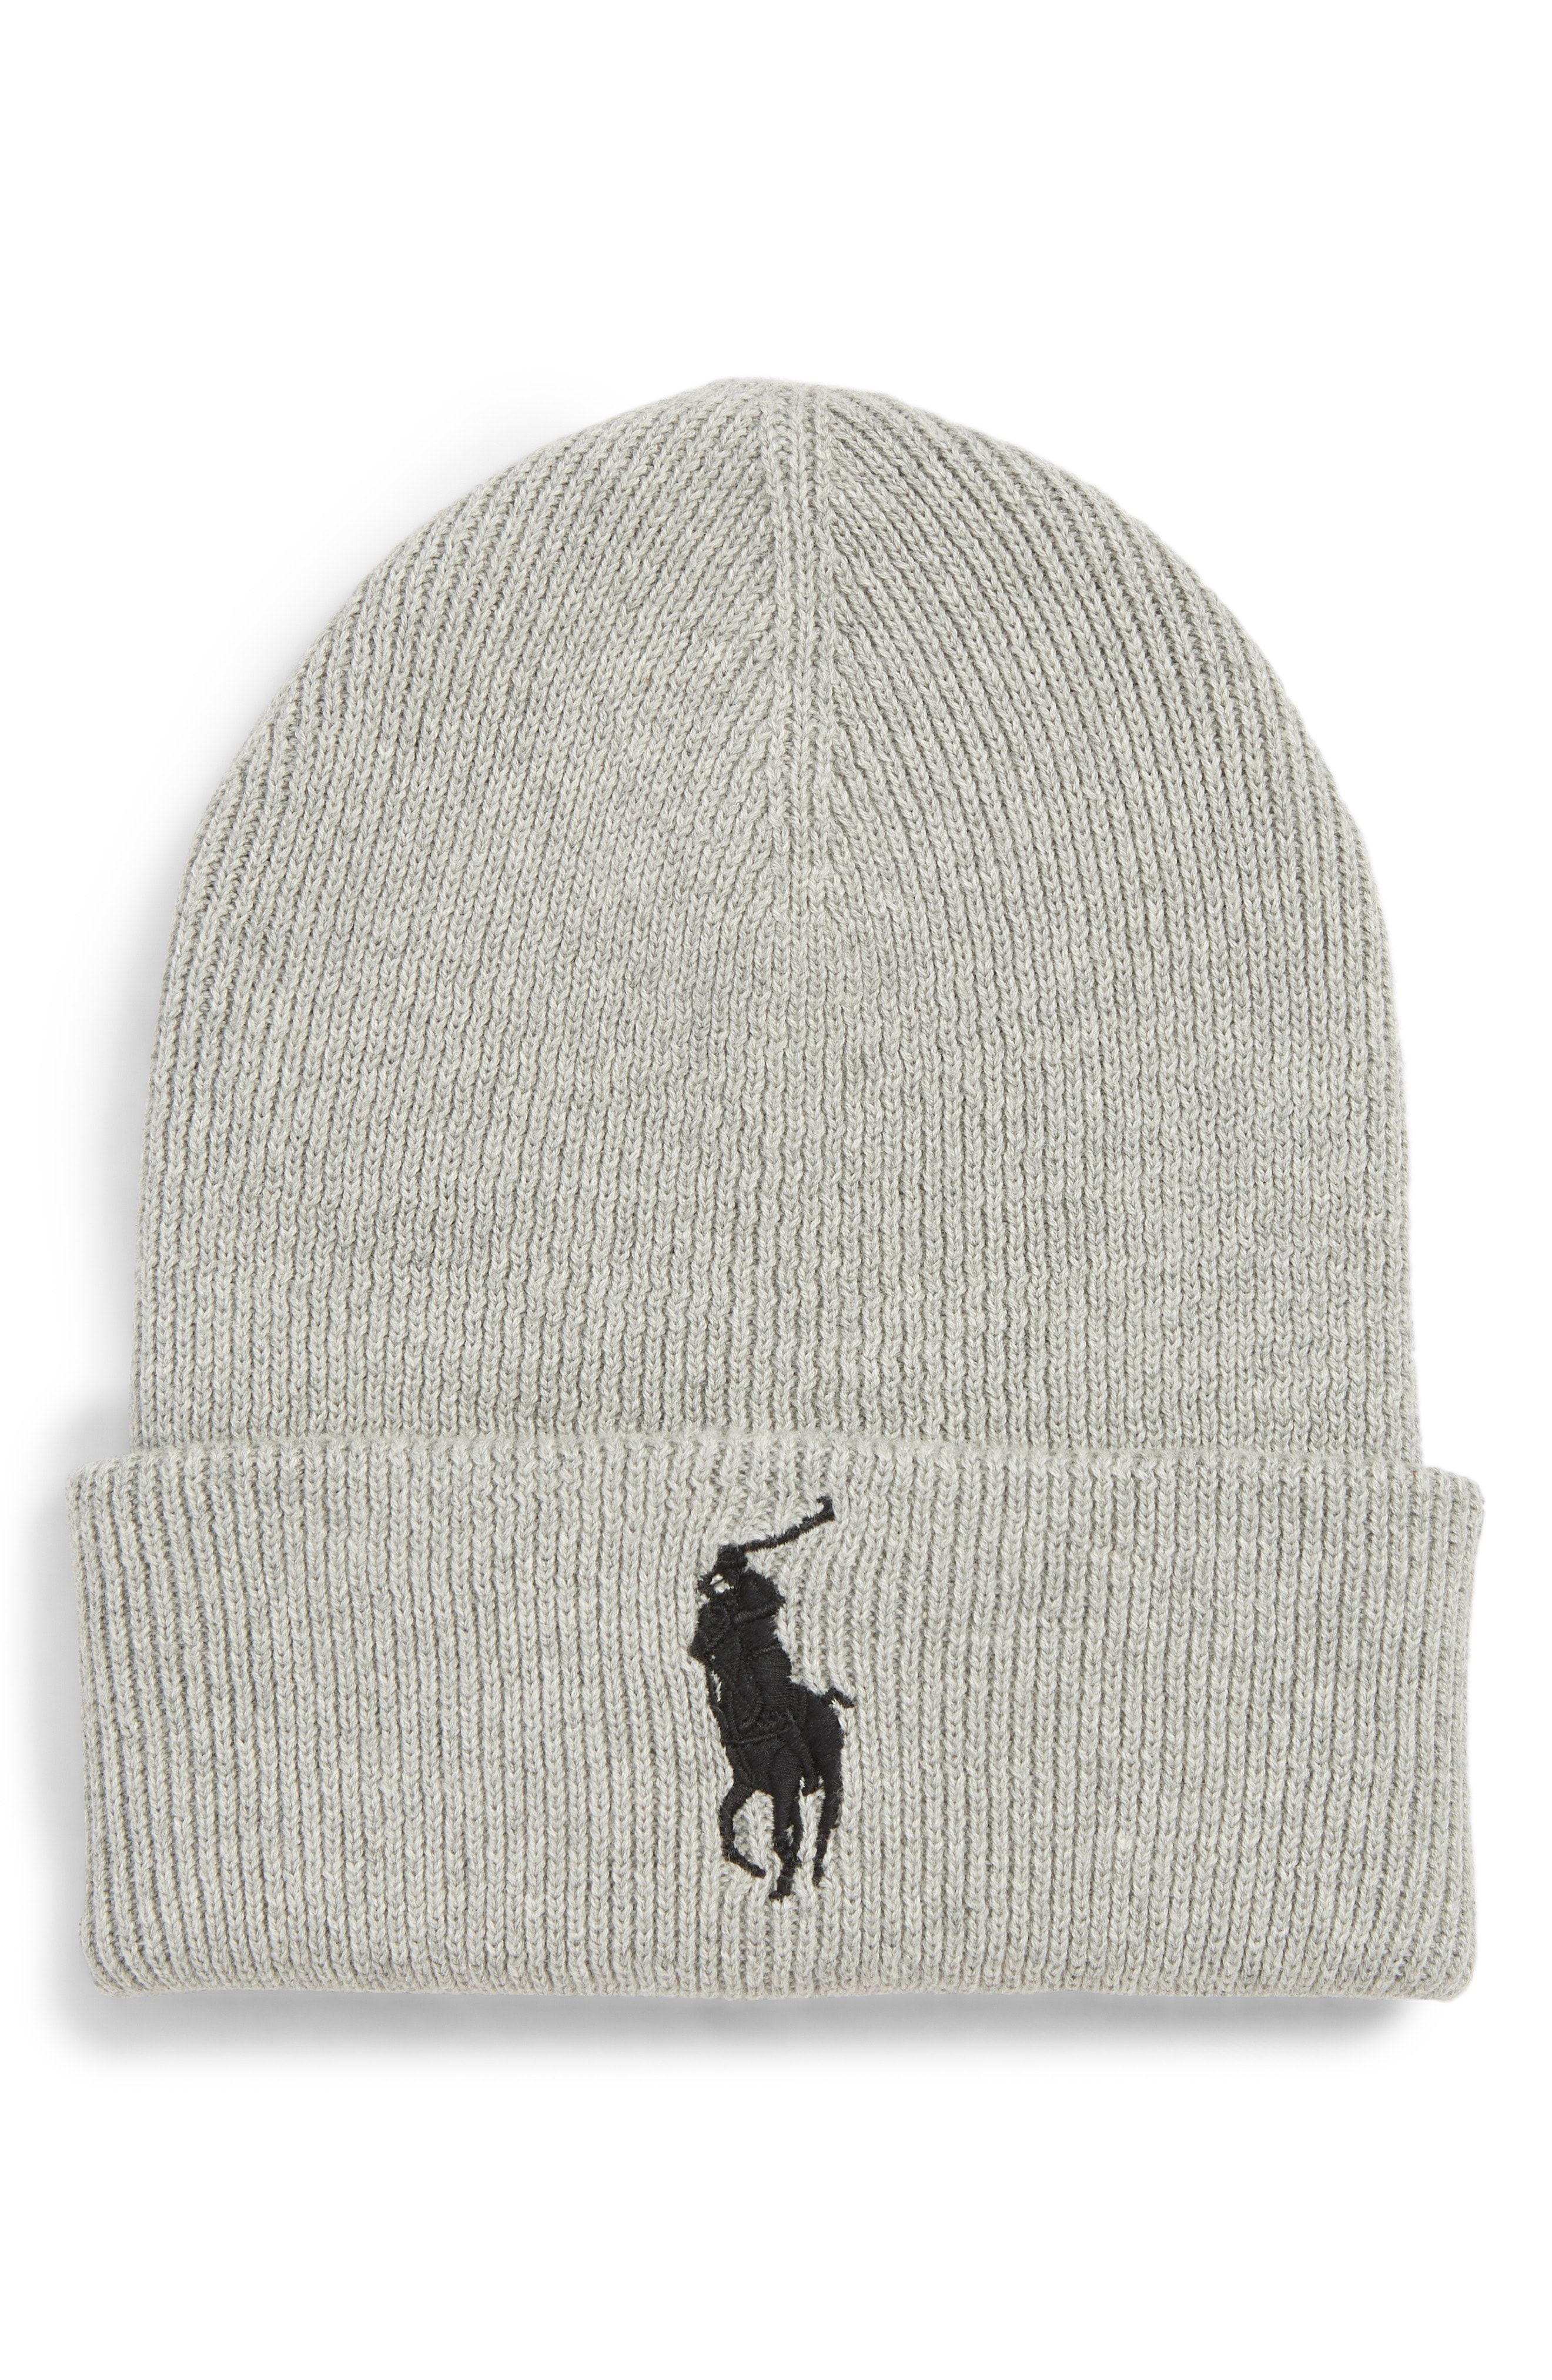 35791a3f8ede0 POLO RALPH LAUREN BIG PONY CUFFED BEANIE - RED.  poloralphlauren ...